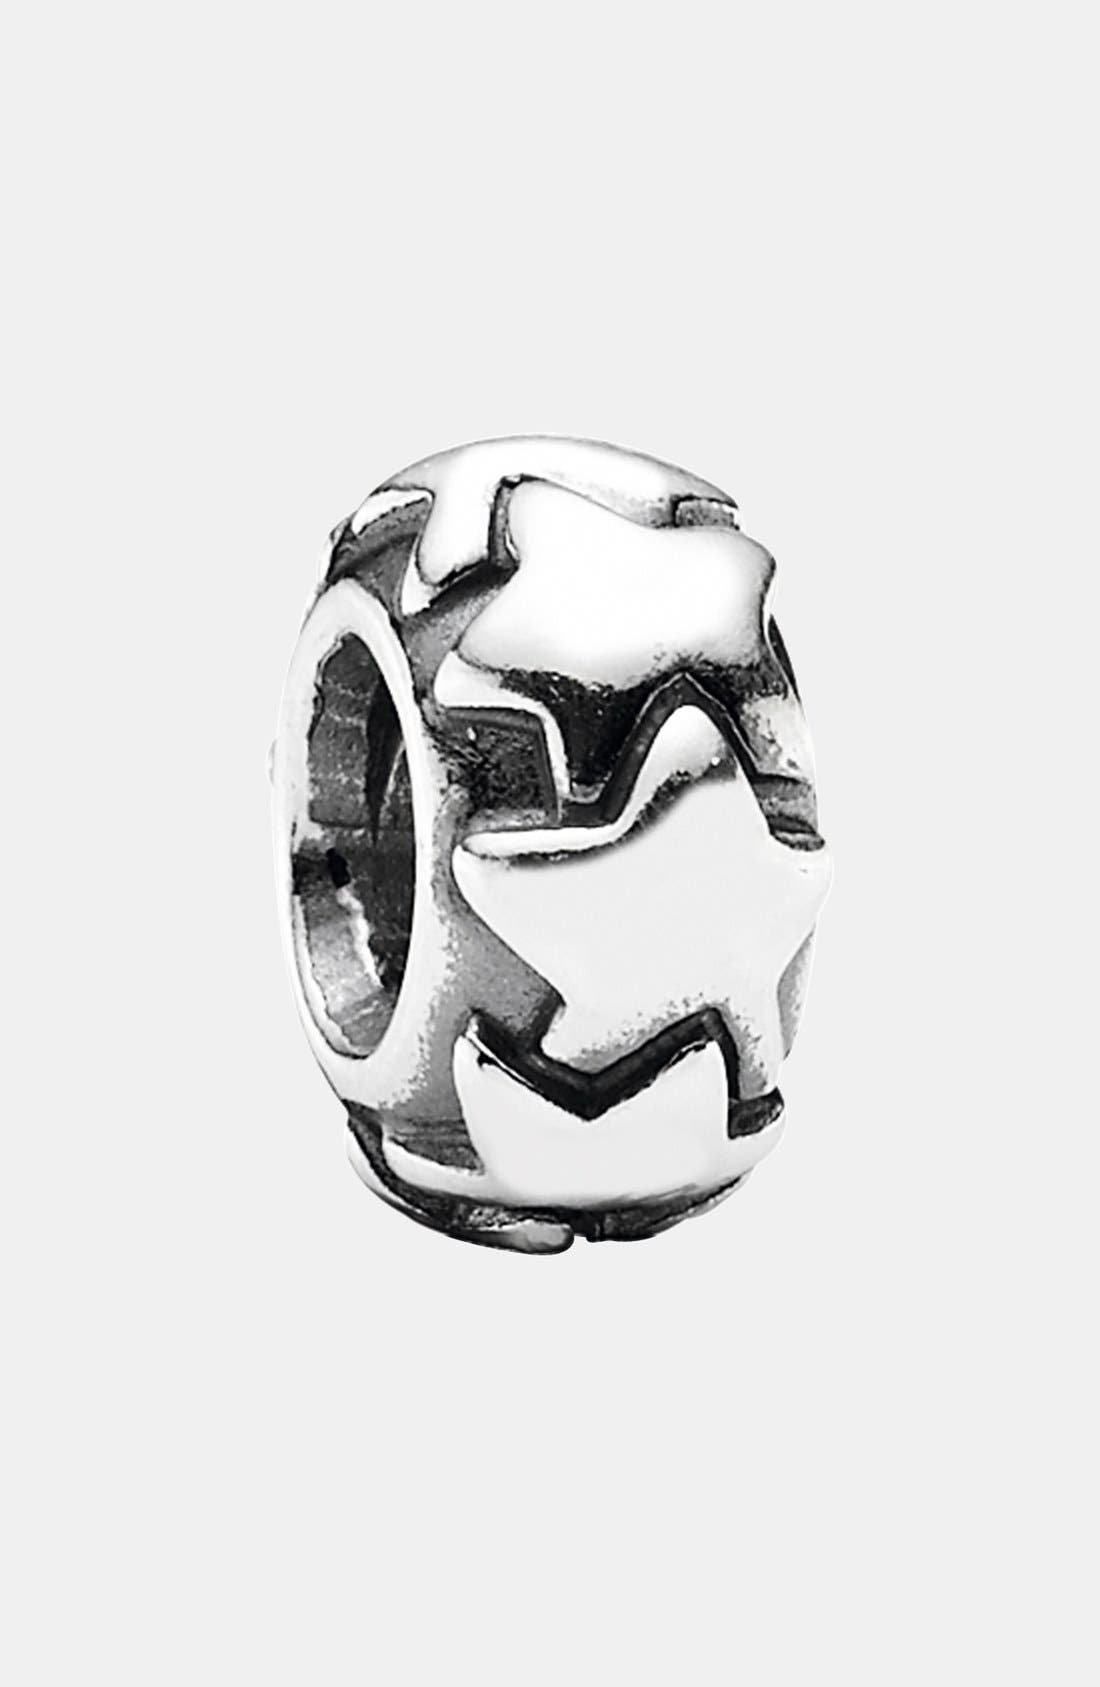 Alternate Image 1 Selected - PANDORA 'Shooting Star' Spacer Charm